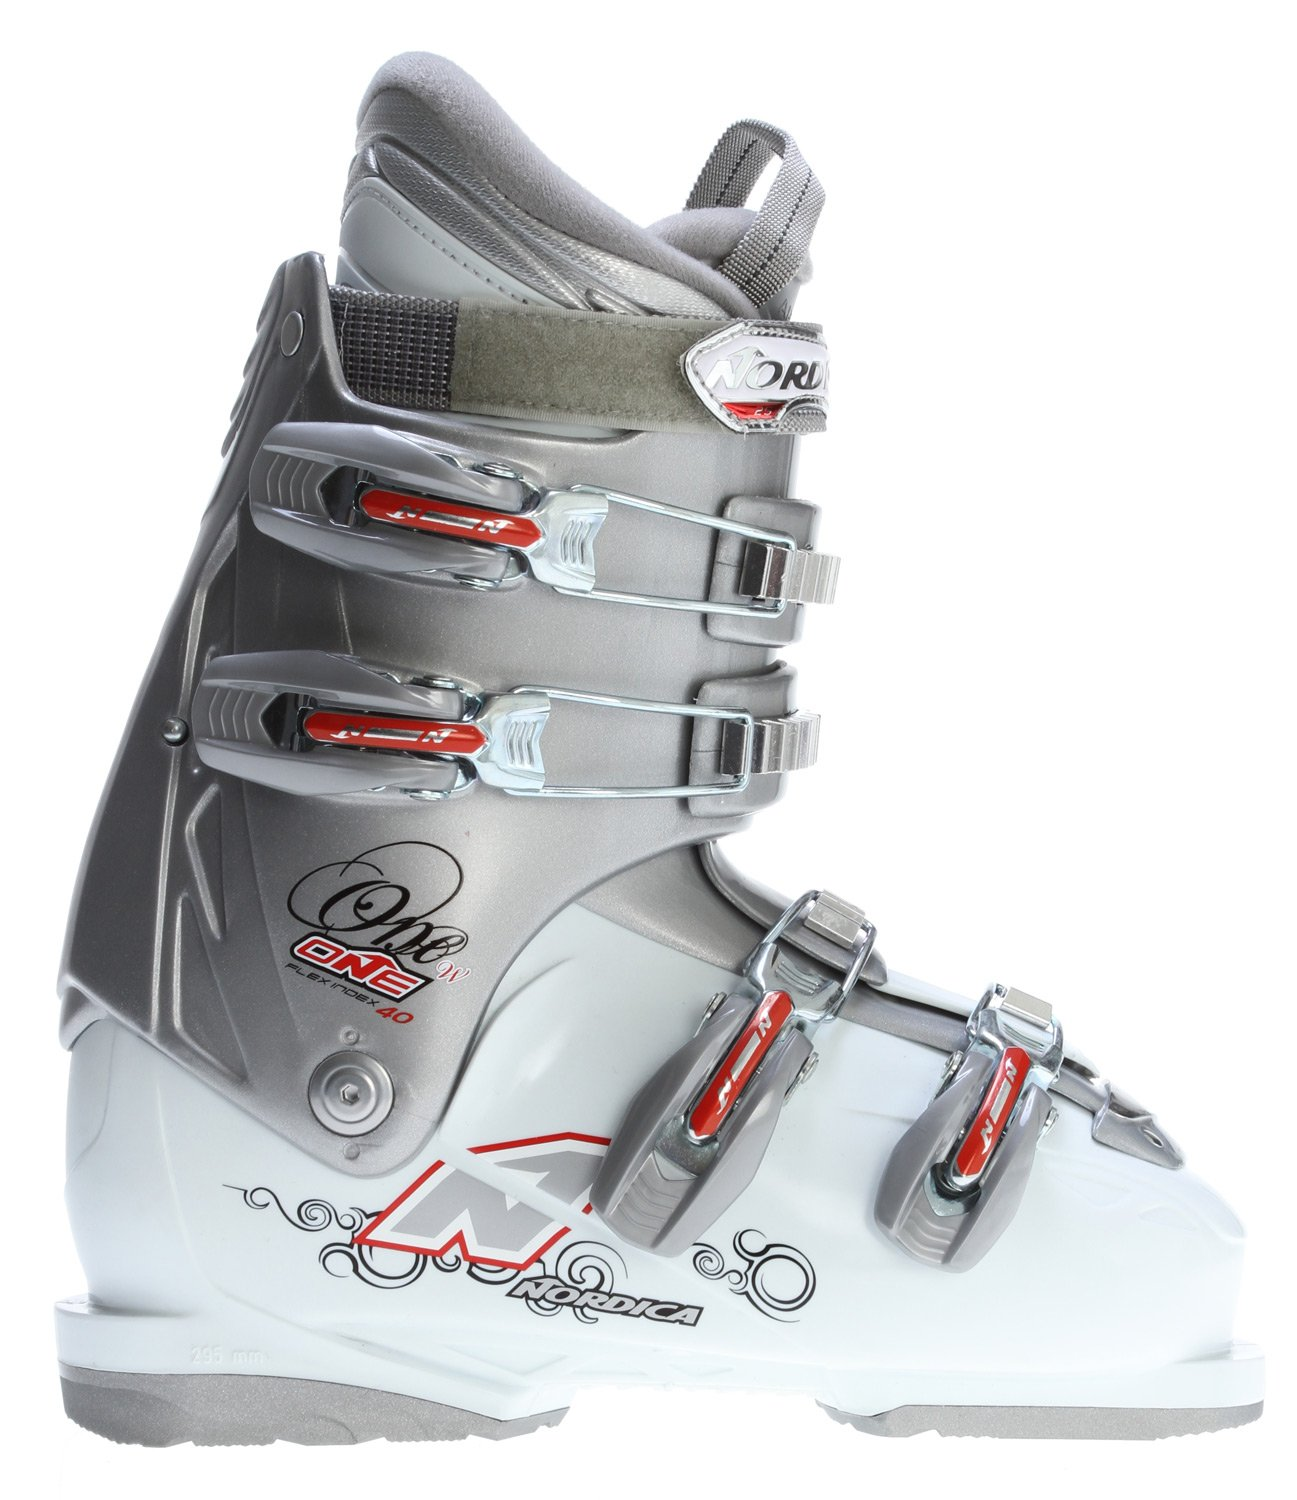 Nordica One 40 Ski Boots Silver/White Women's Sz 6.5 (23.5) by NORDICA One Womens Ski Boot